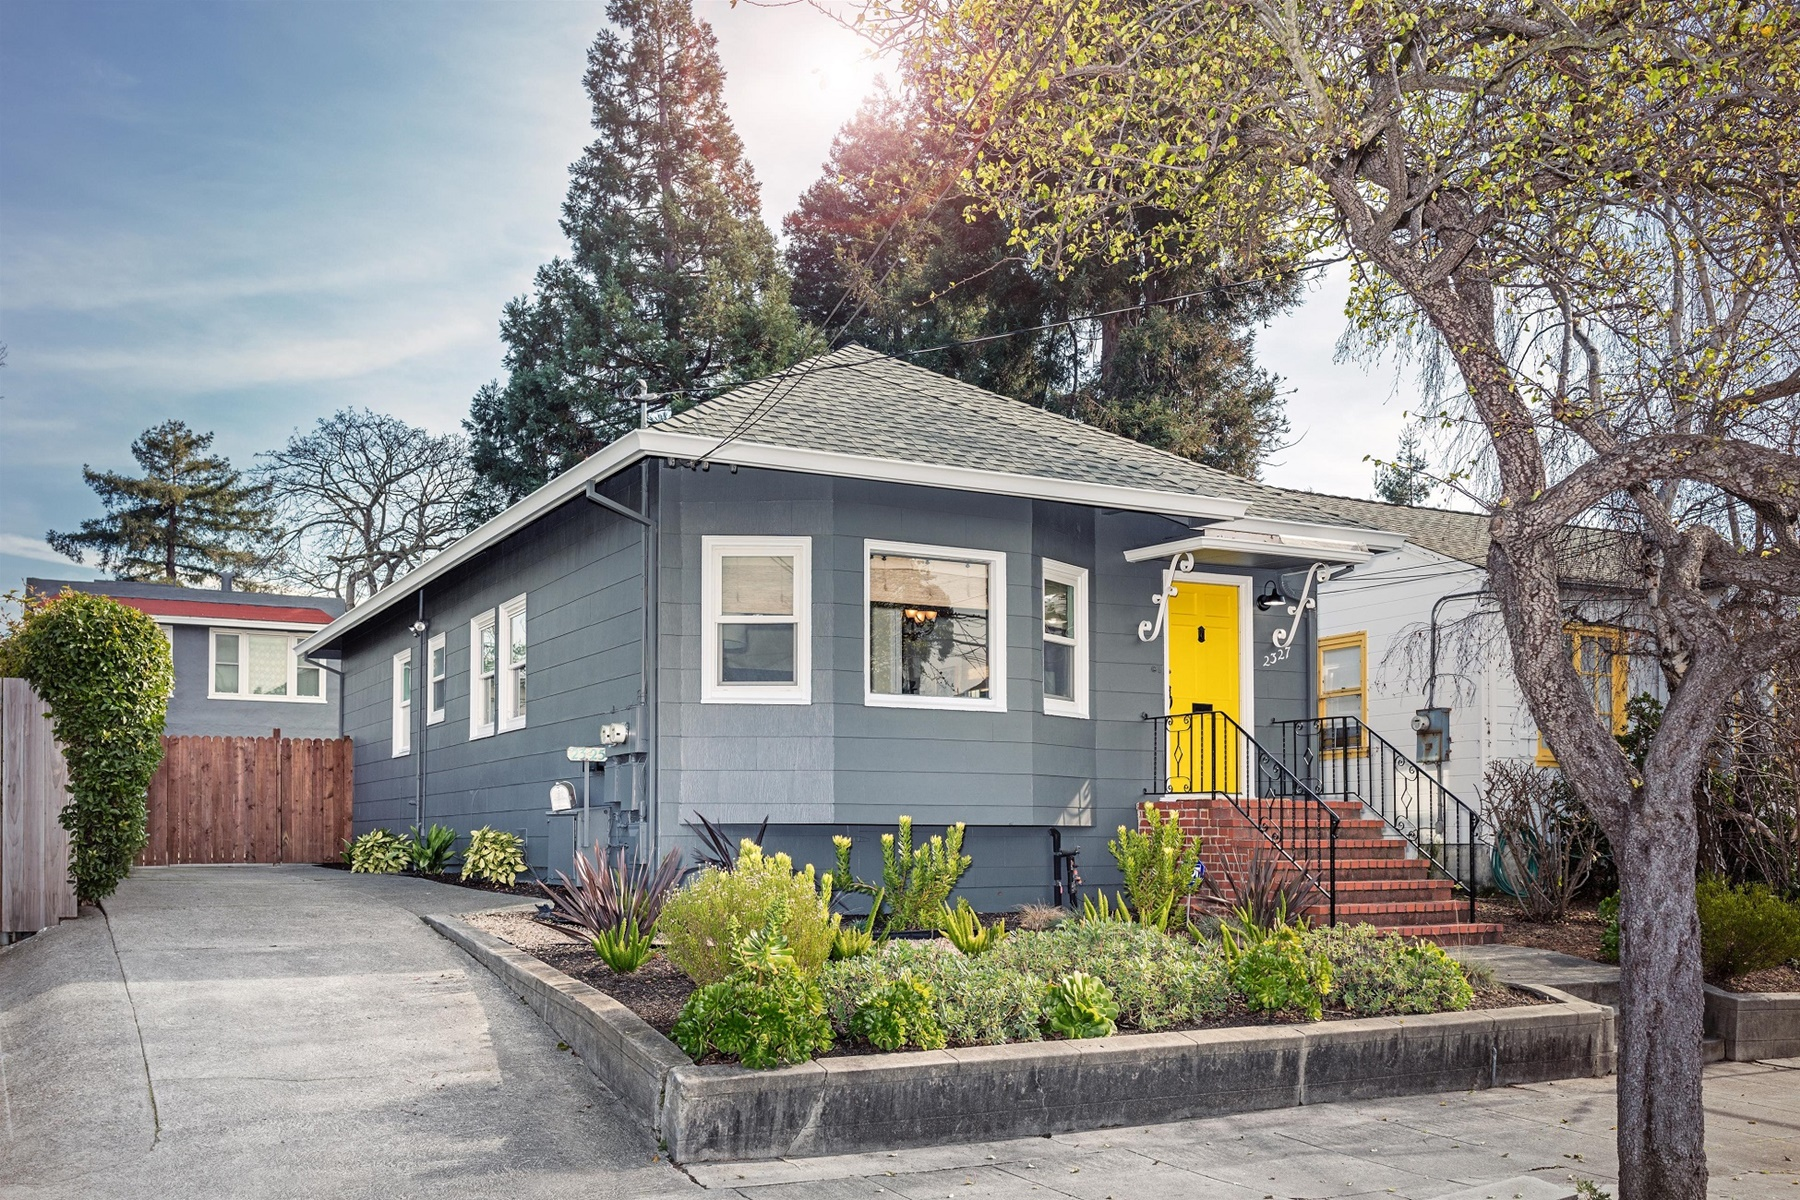 дуплекс для того Продажа на Golden Duplex Opportunity In Berkeley 2327 Curtis Street Berkeley, Калифорния 94702 Соединенные Штаты